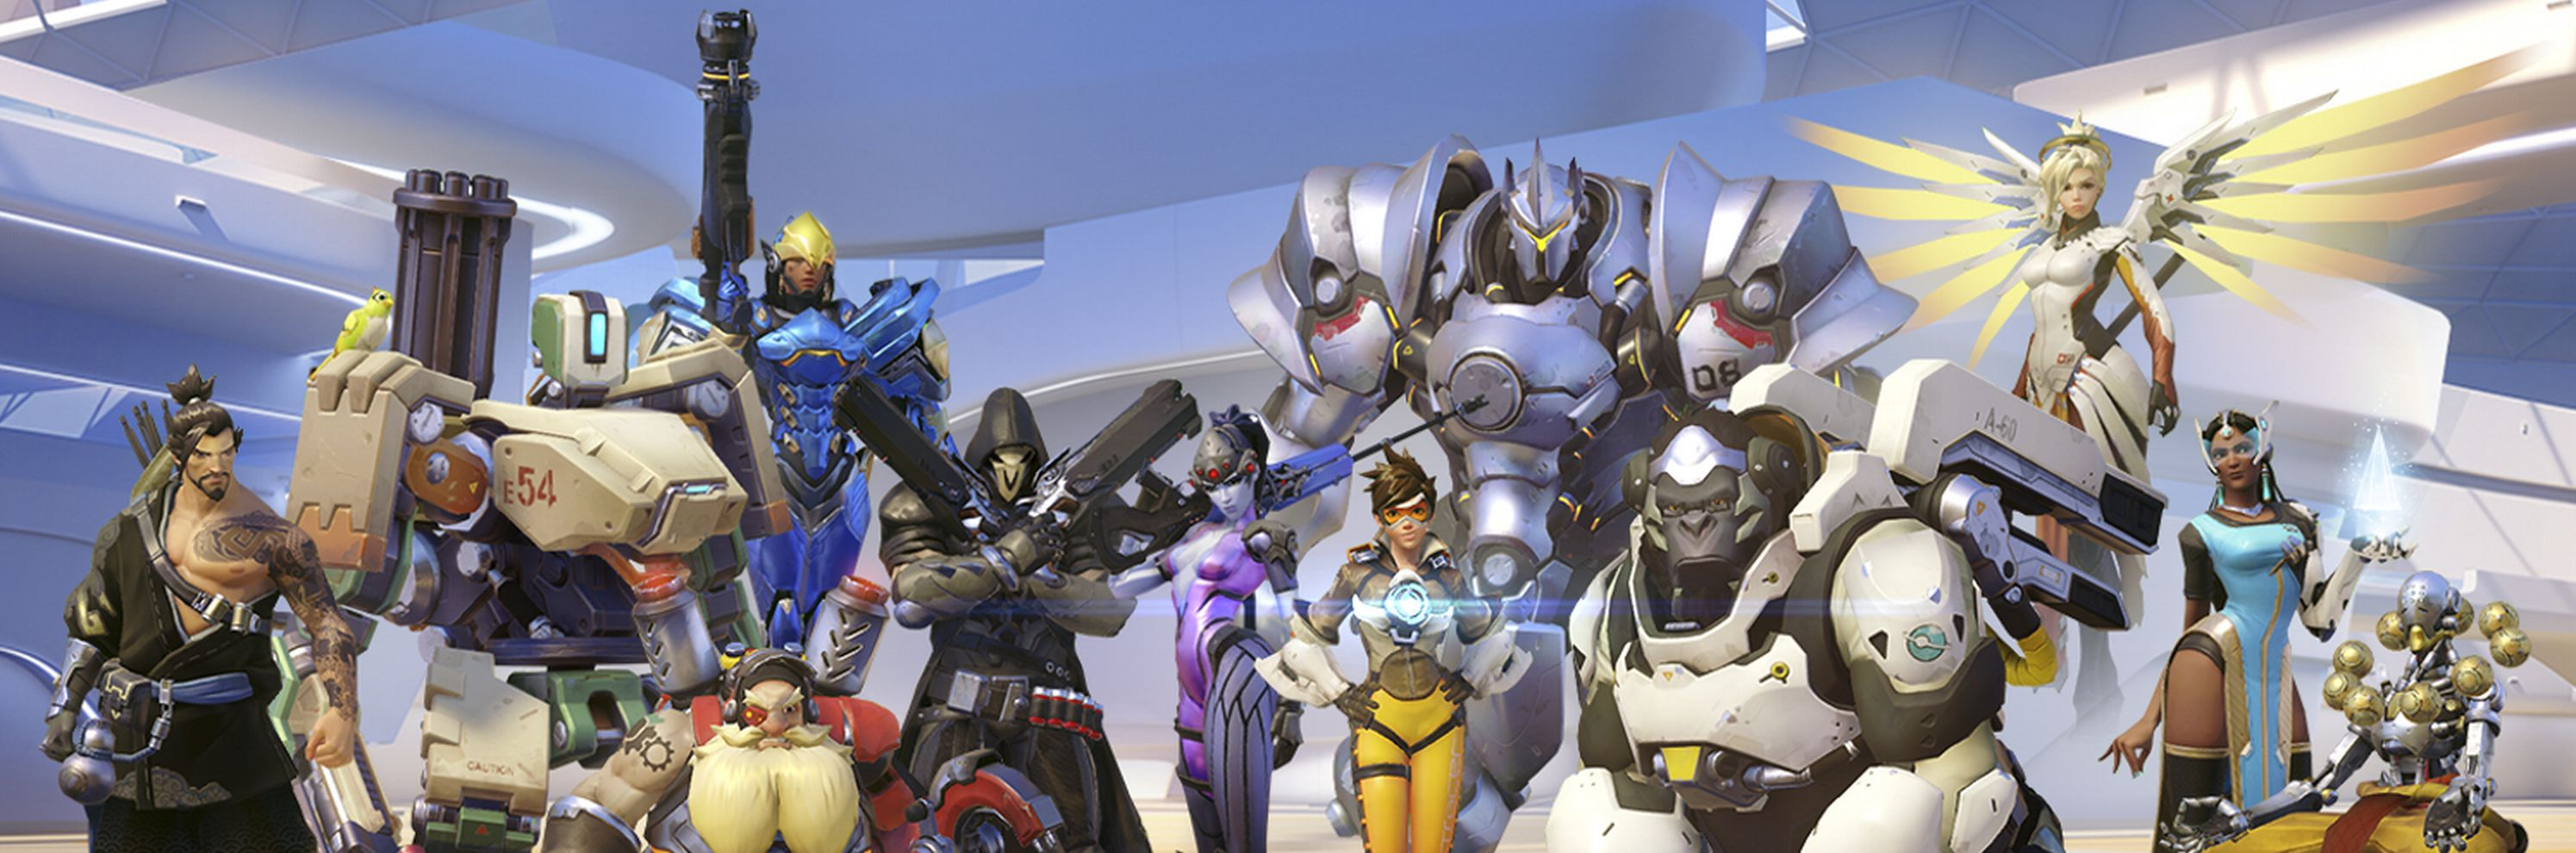 Blizzard Reveals Overwatch PC System Requirements, Closed